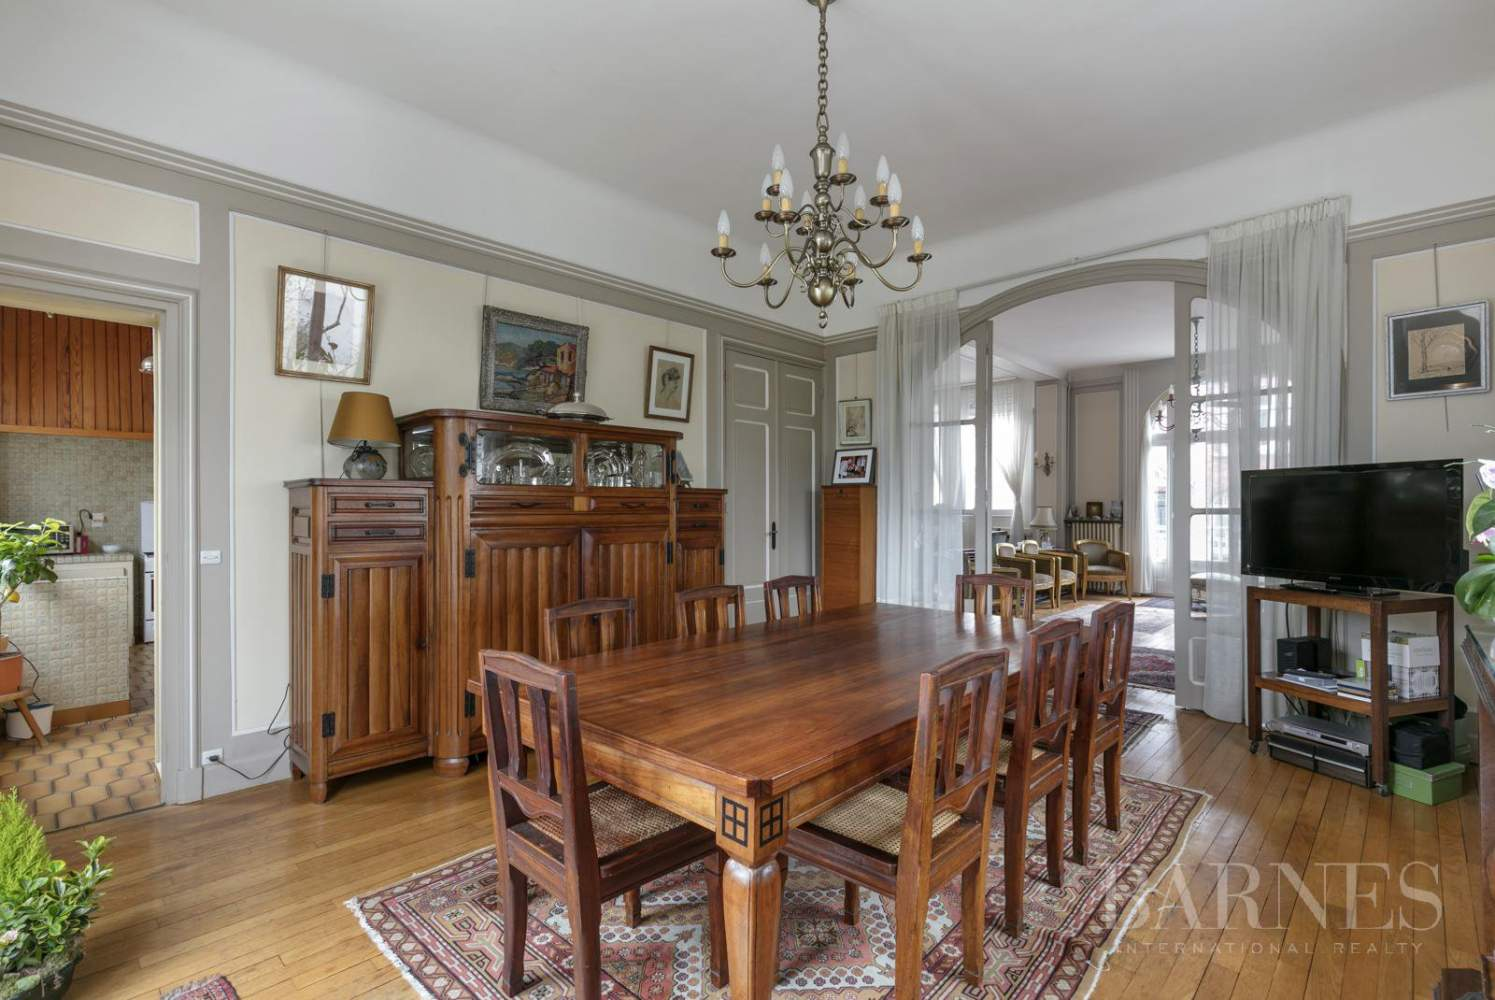 BOURGEOIS HOUSE WITH GARDEN - PRIVATE ROAD - NEUILLY/SAINT-JAMES picture 3